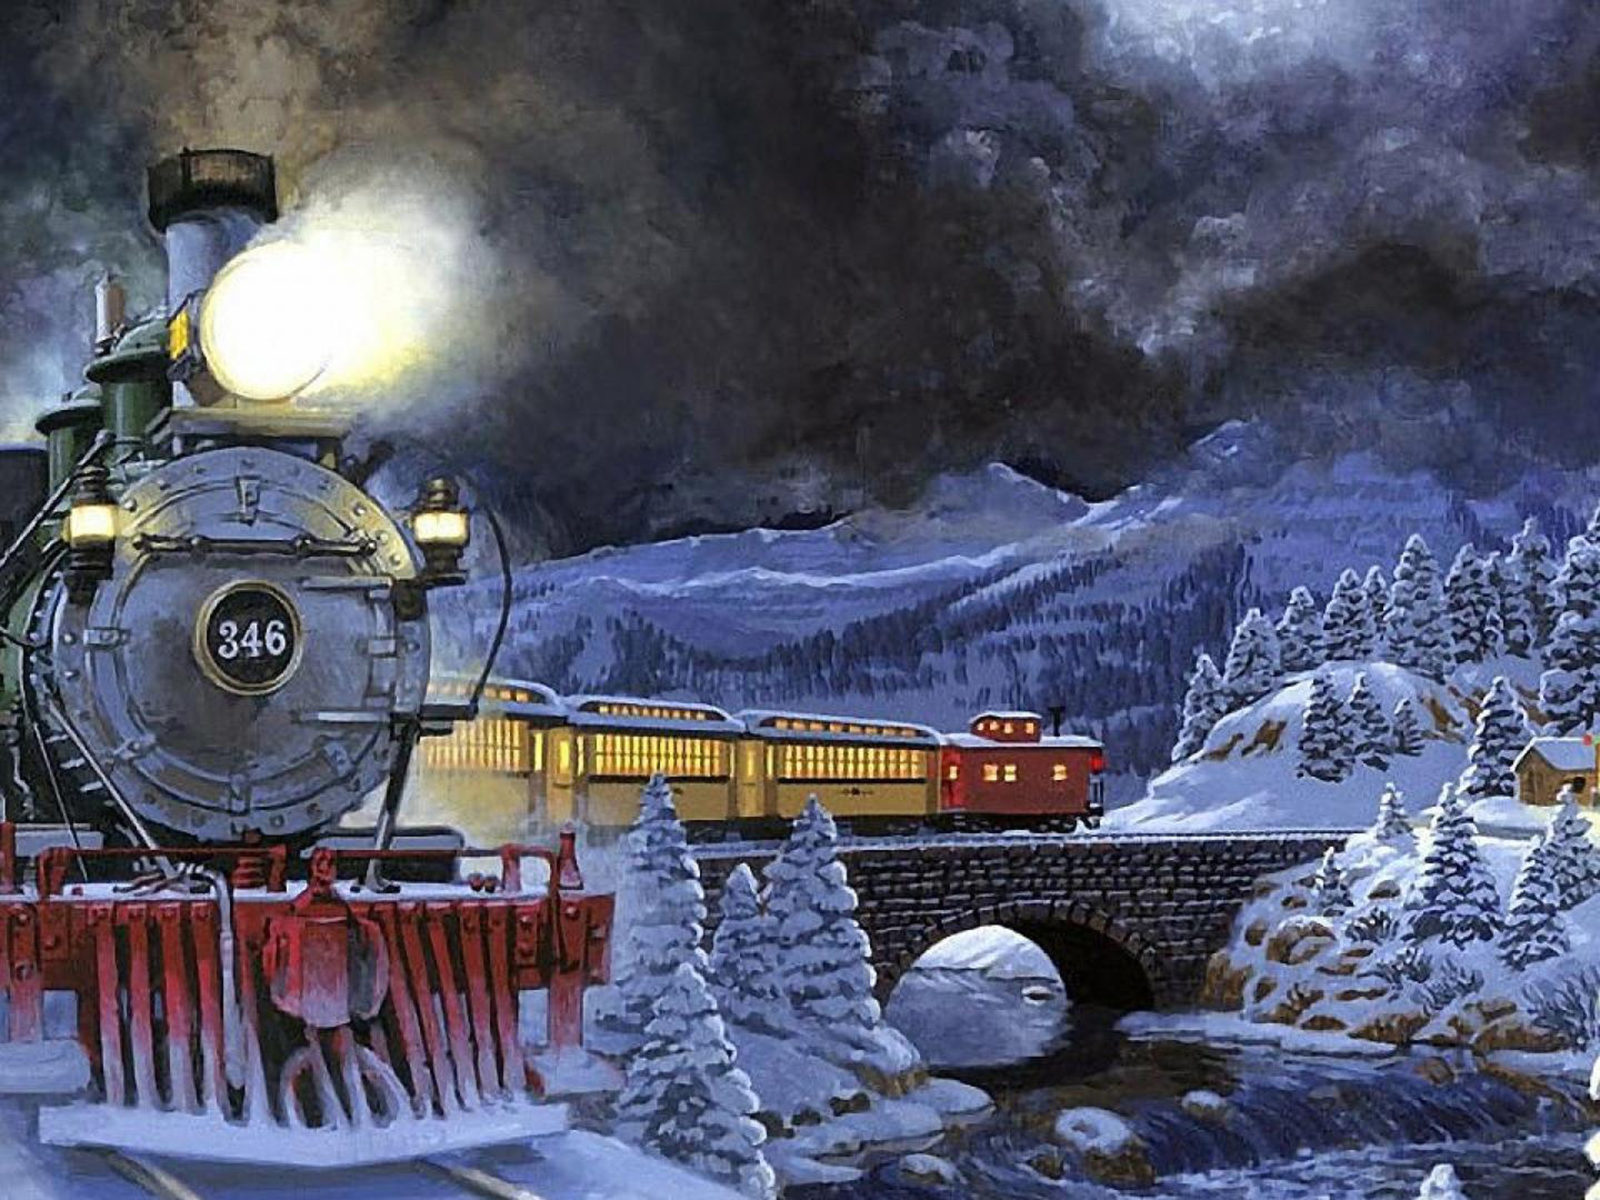 Dota 2 3d Wallpaper For Pc Winter Night Moving Train Light Snow Trees Stone Bridge